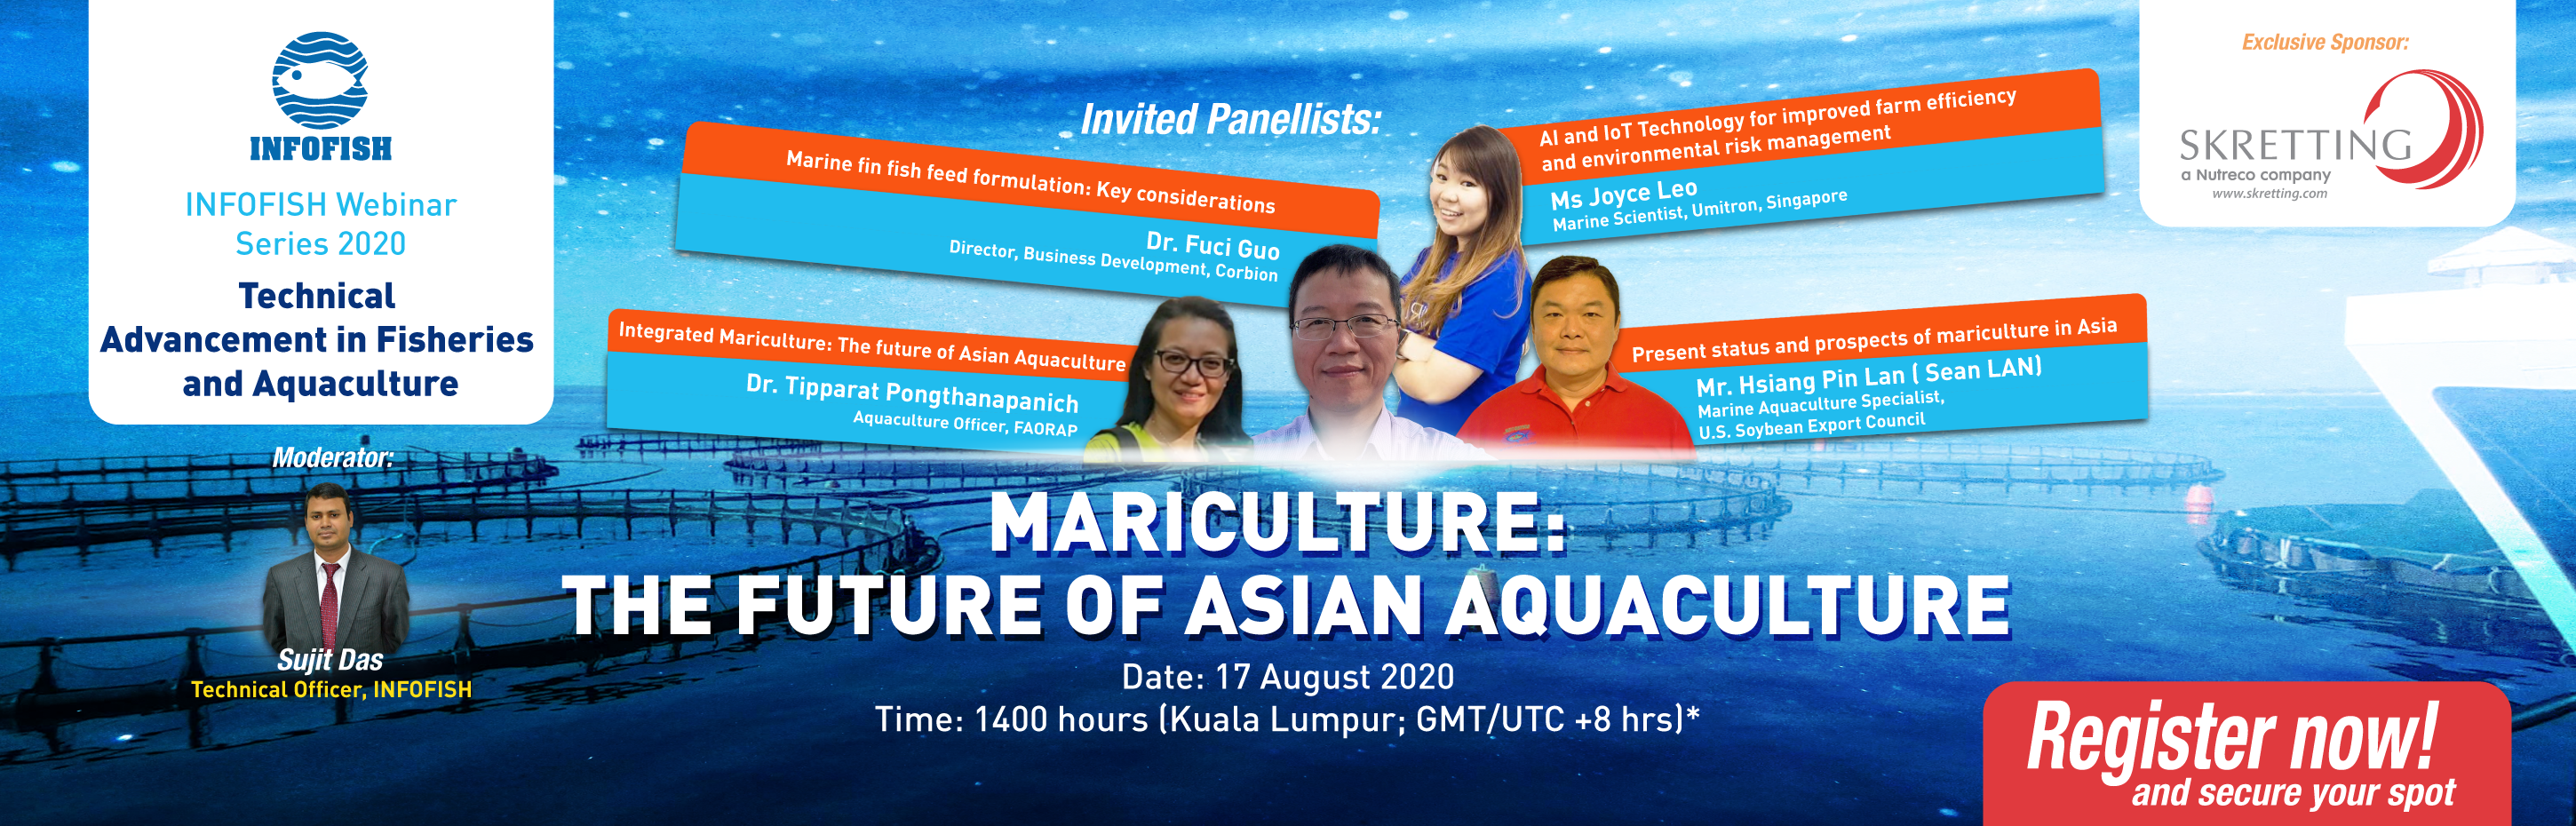 _-Integrated-Mariculture--the-future-of-Asian-Aquaculture